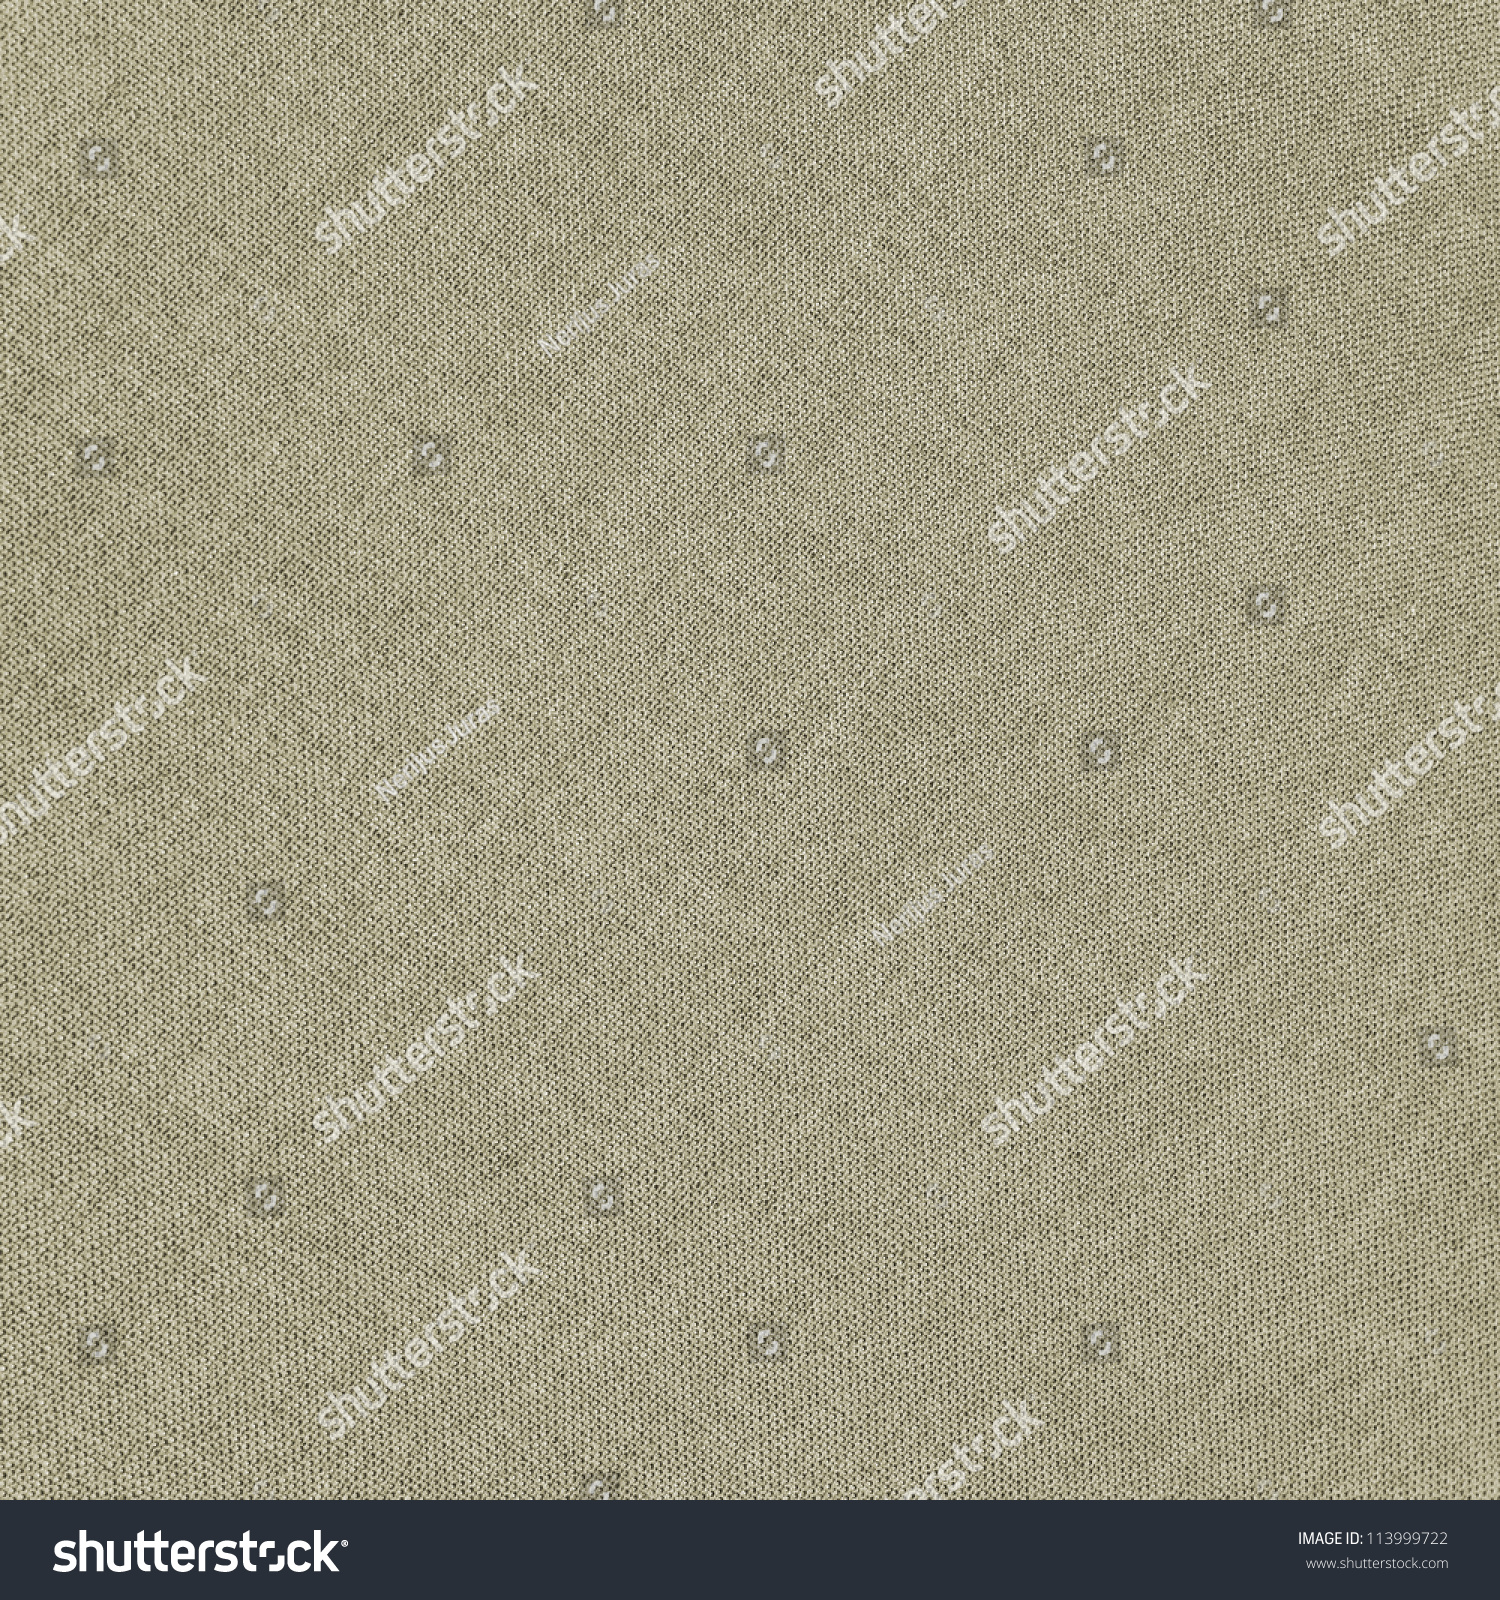 Fabric Book Cover Texture : Cloth texture background book cover stock photo